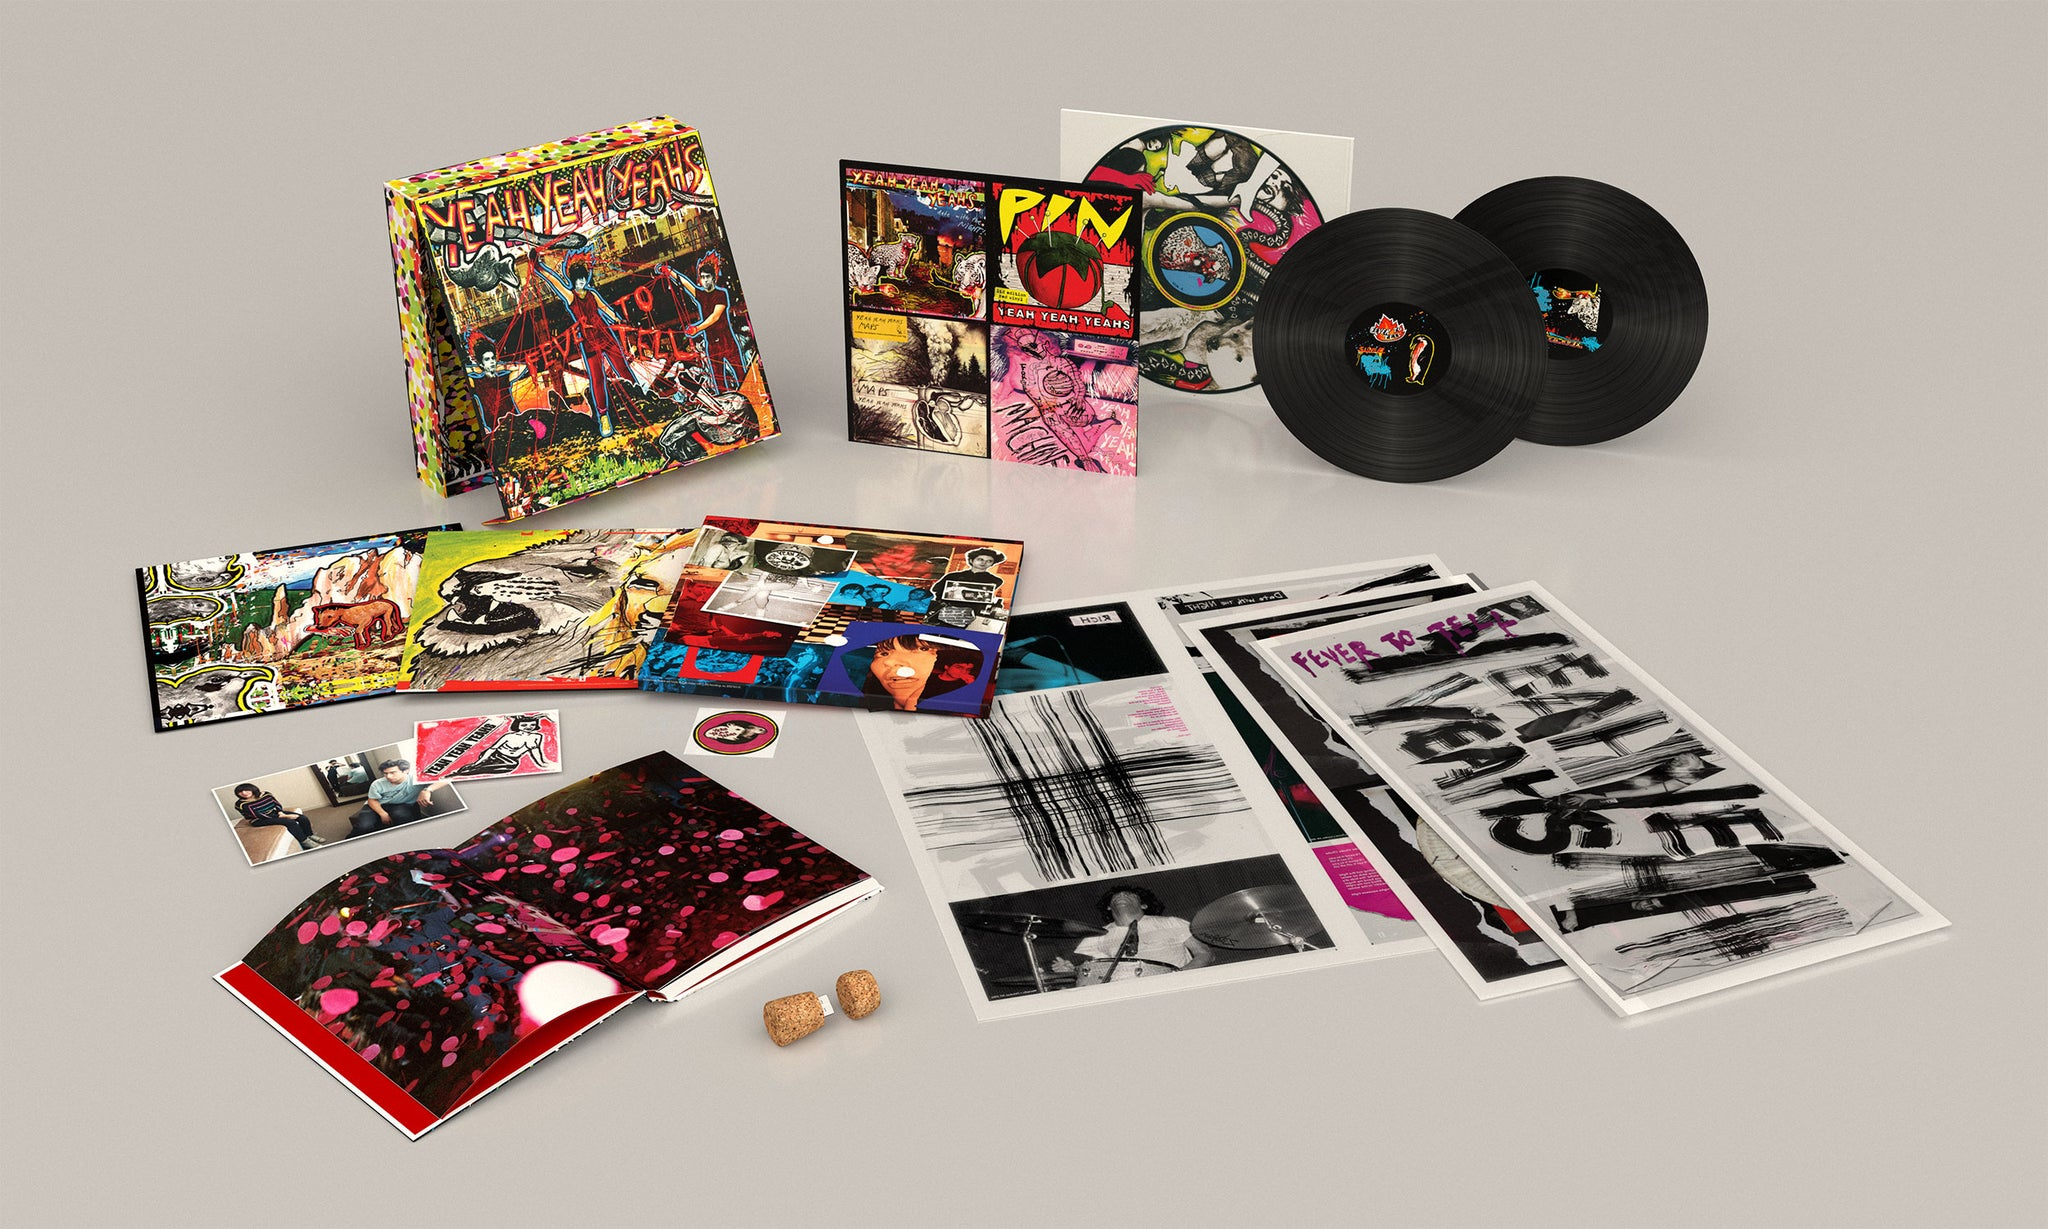 Limited Edition Fever To Tell Deluxe Box Set | Yeah Yeah Yeahs on yeah huh, yeah well, ohh yeah, yeah clip art, yeah it was, yeah you know, yeah boy, ludacris yeah, yeah album cover, karen o yeah, yeah band, aw yeah, yeah buddy, yeah i know, uh yeah, yeah thank you,